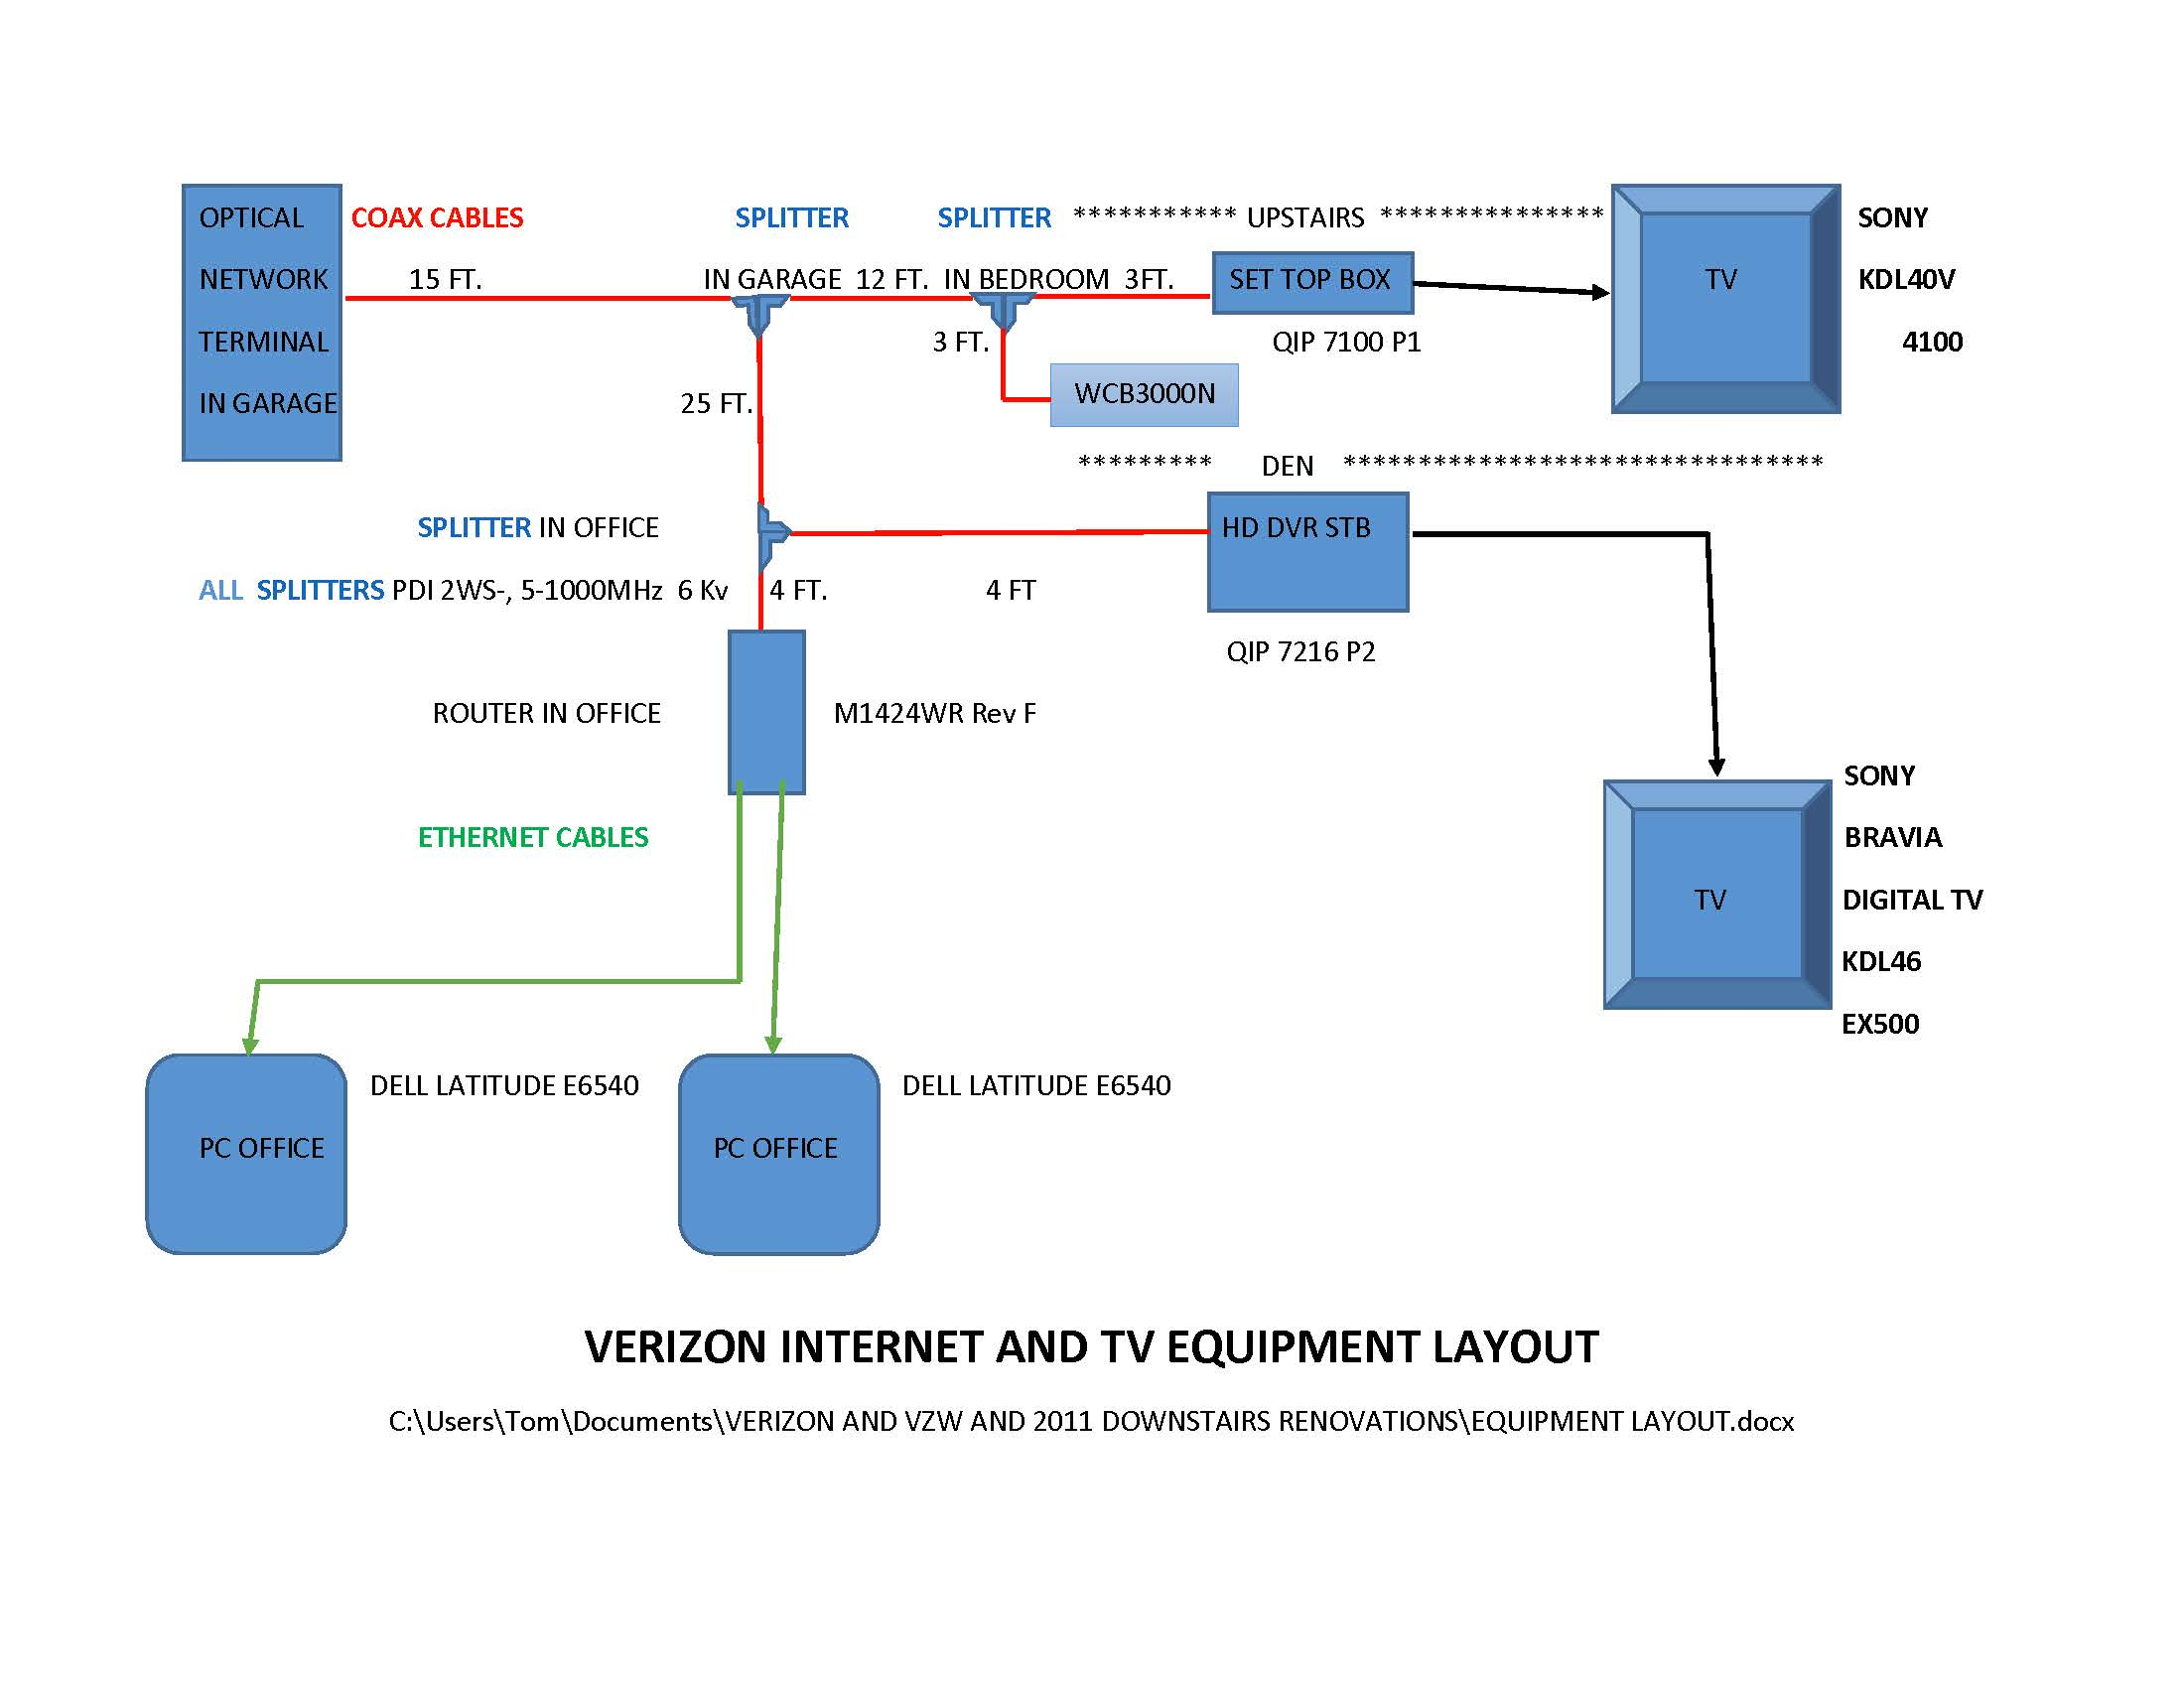 Internet wiring diagrams wiring diagrams schematics fantastic for time warner cable phone internet wiring diagram cat 6e wiring diagram cat5 ethernet cable wiring diagram old fashioned for time warner cable cheapraybanclubmaster Gallery